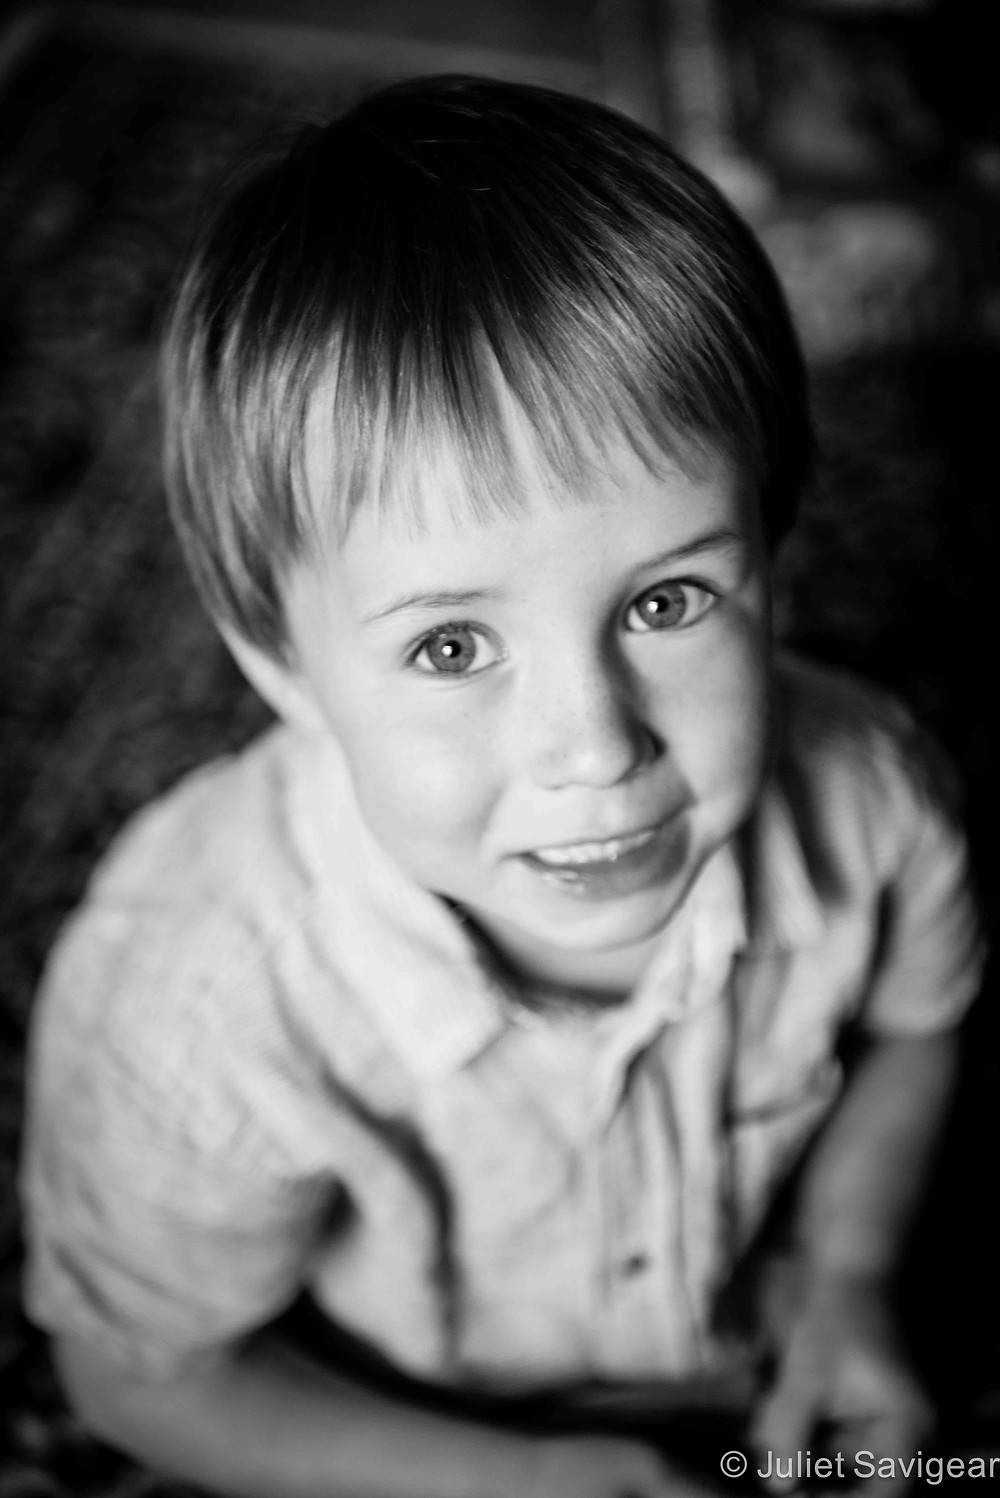 Cheeky Face - Children's Photography, Tooting